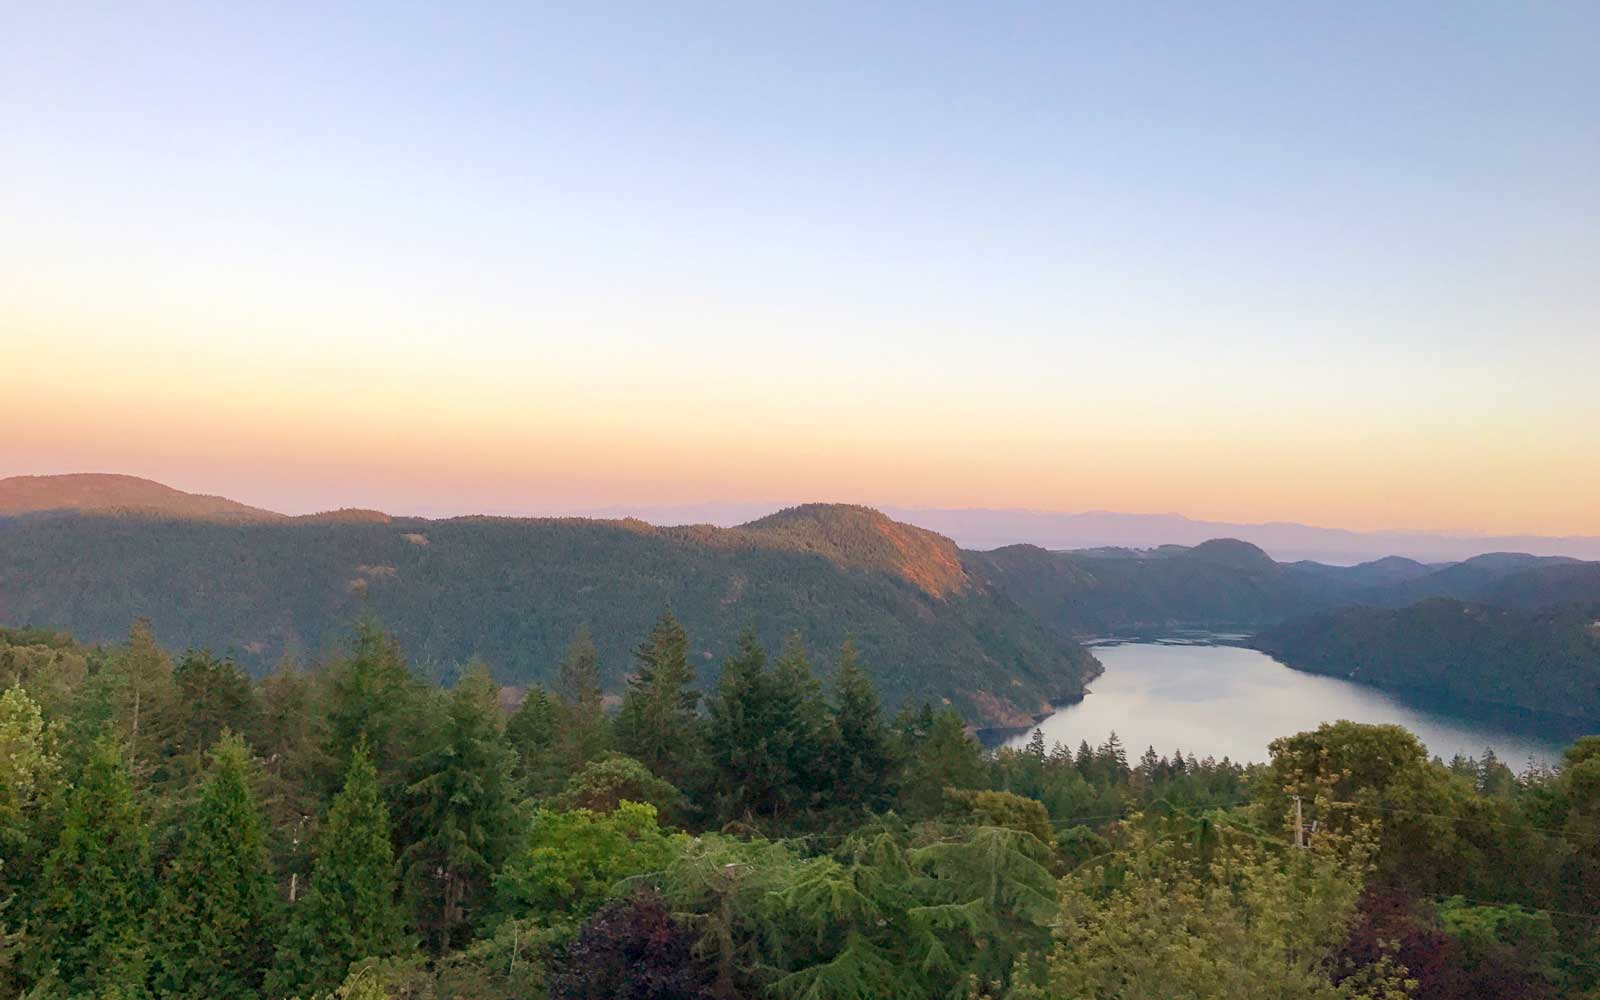 View from Villa Eyrie on Vancouver Island, Canada